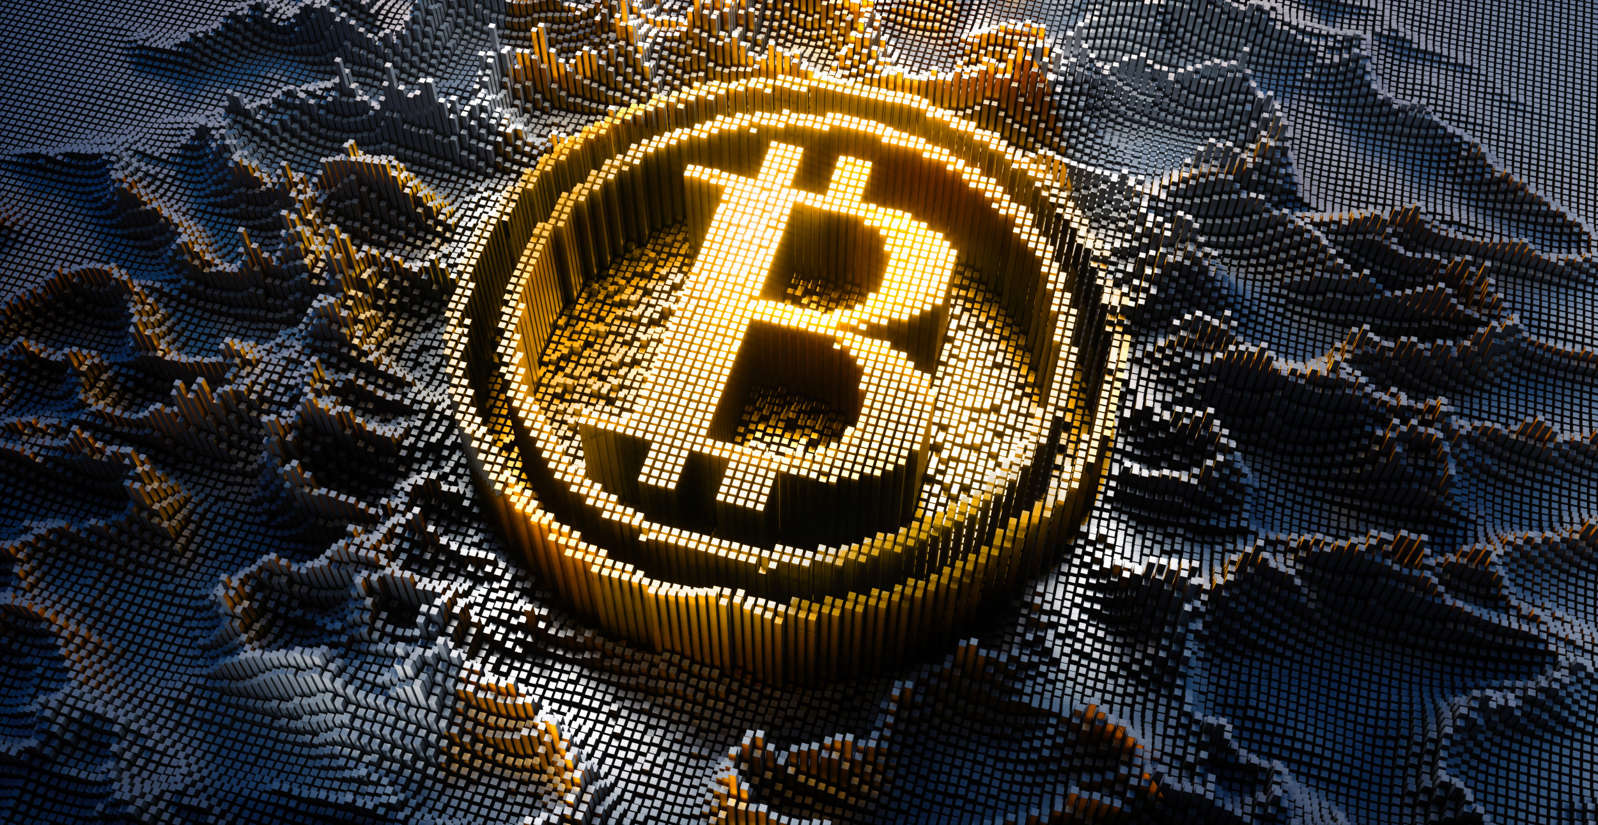 A stock photo of the bitcoin symbol. An Ohio man who operated a cryptocurrency laundering service has pleaded guilty to money laundering conspiracy charges in federal court.